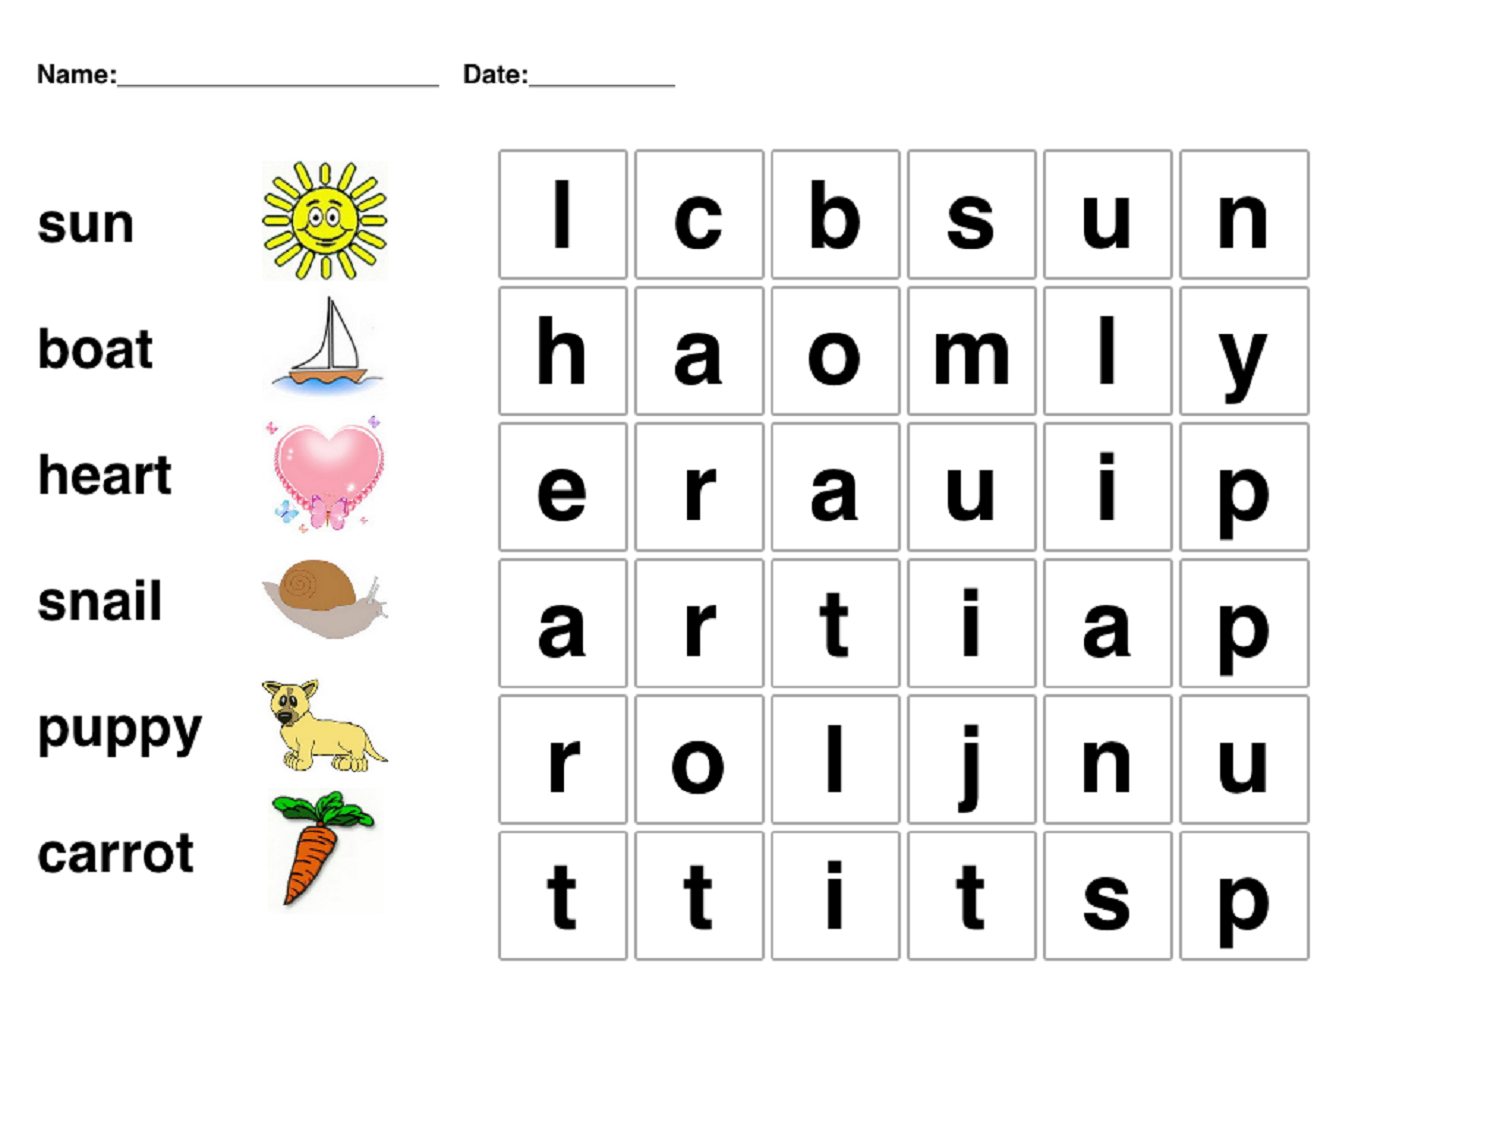 Puzzle Words For Fun English Word Game